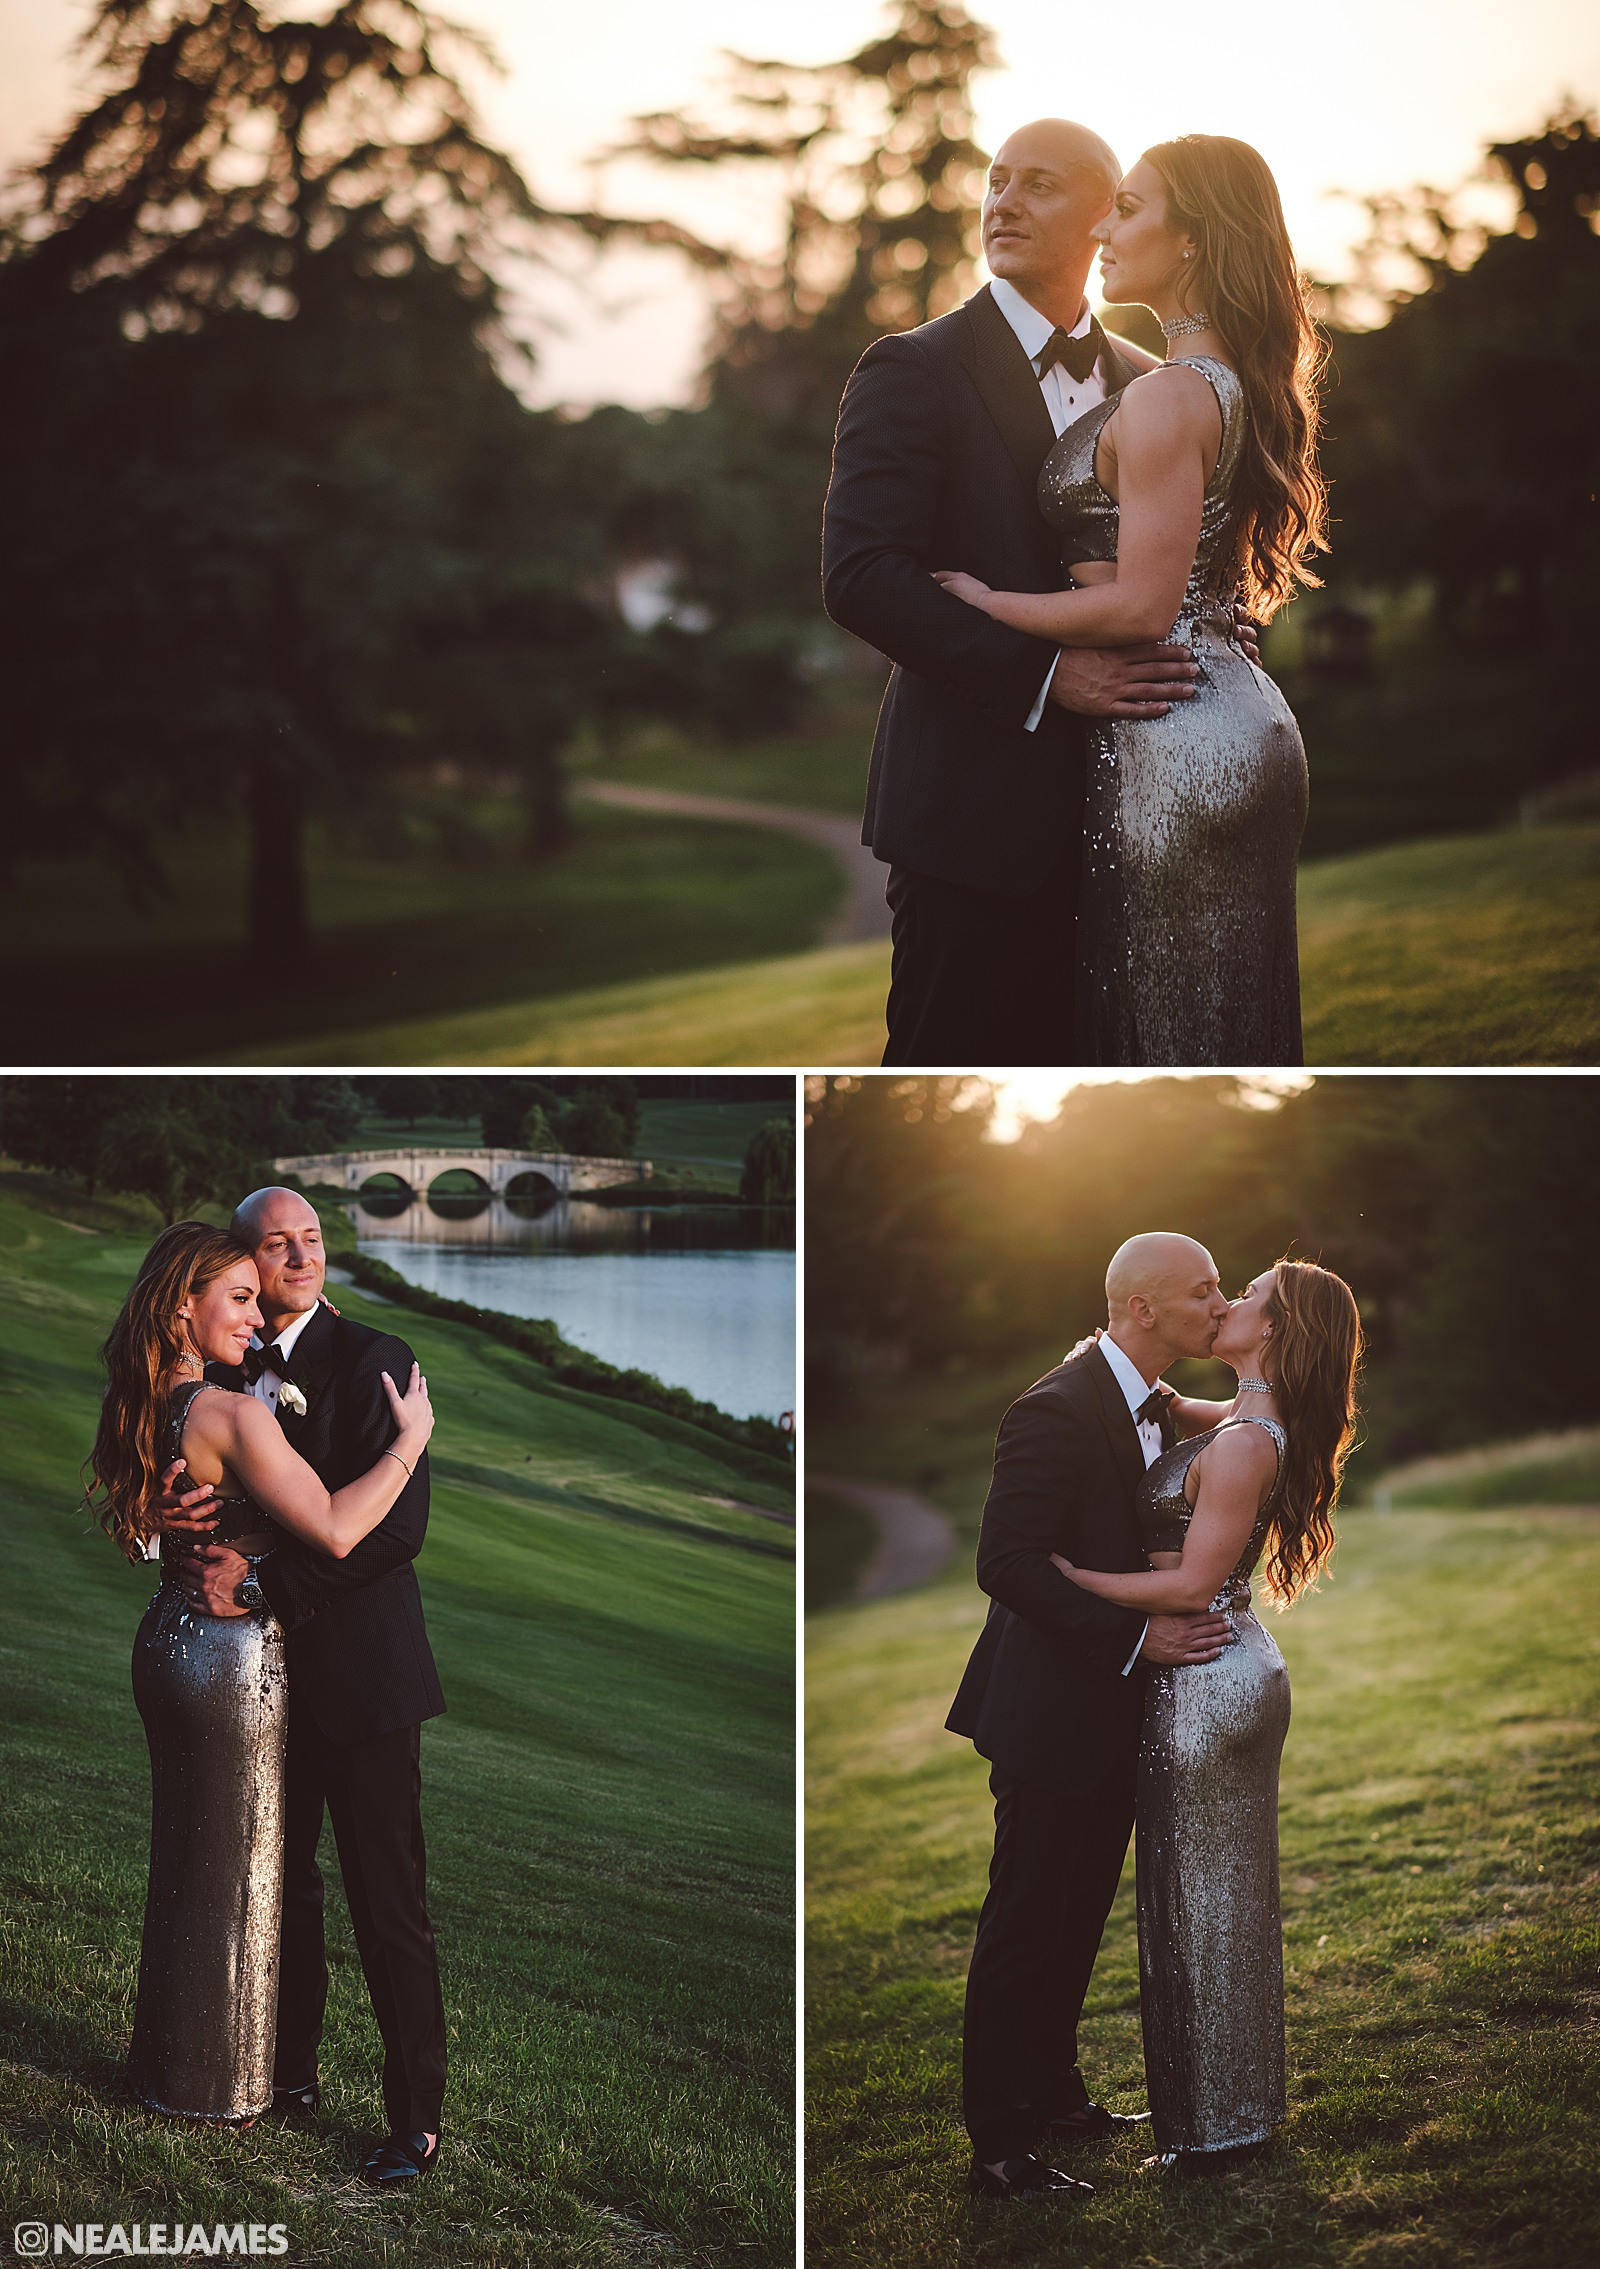 A golden hour wedding photo at Brocket Hall in Hertfordshire England